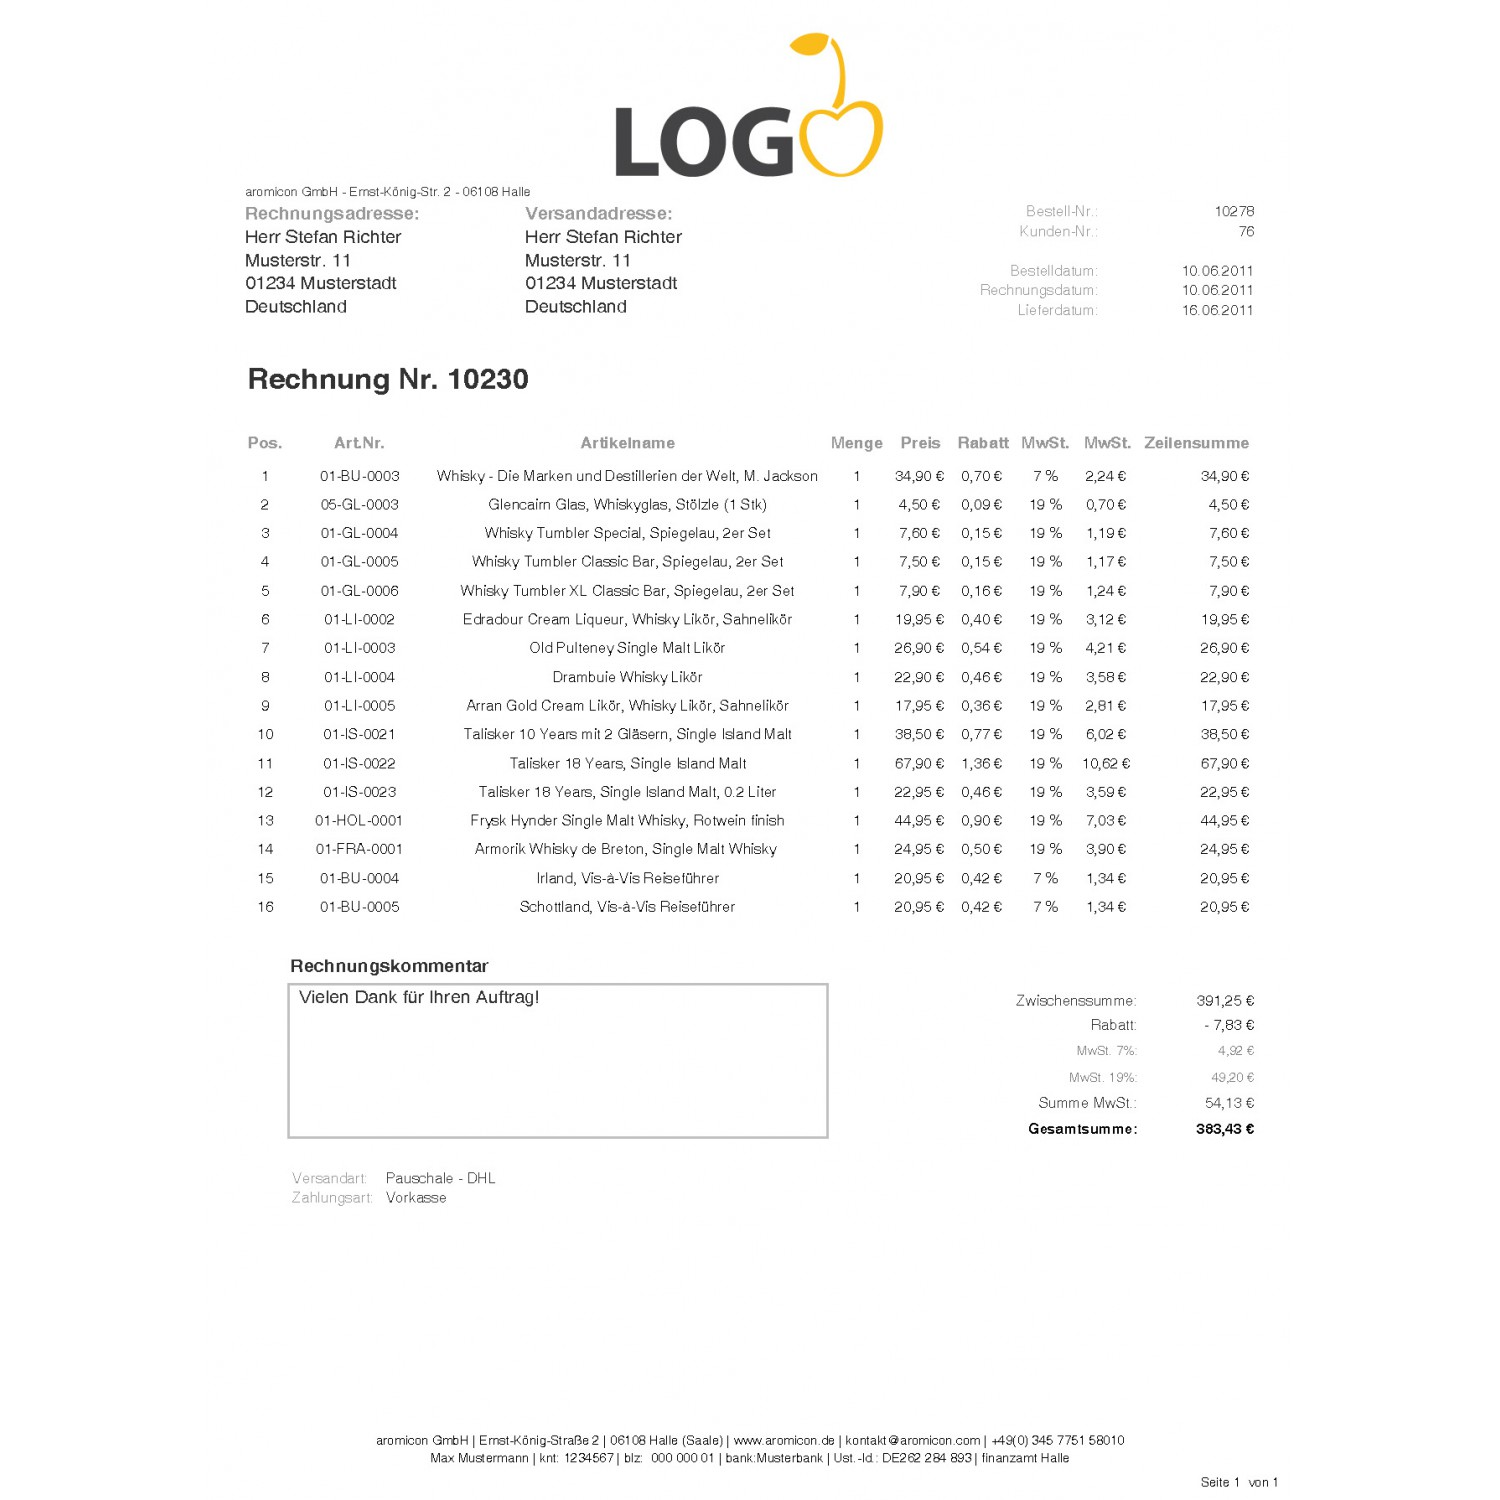 Lowes Return Without Receipt Download German Invoice Template Word  Rabitahnet Payment On The Invoice Excel with Fedex Pay Invoice Invoice Pdf Pro  Standard Invoice Template German  Aromicon Simple  Invoice Money Receipt Sample Format